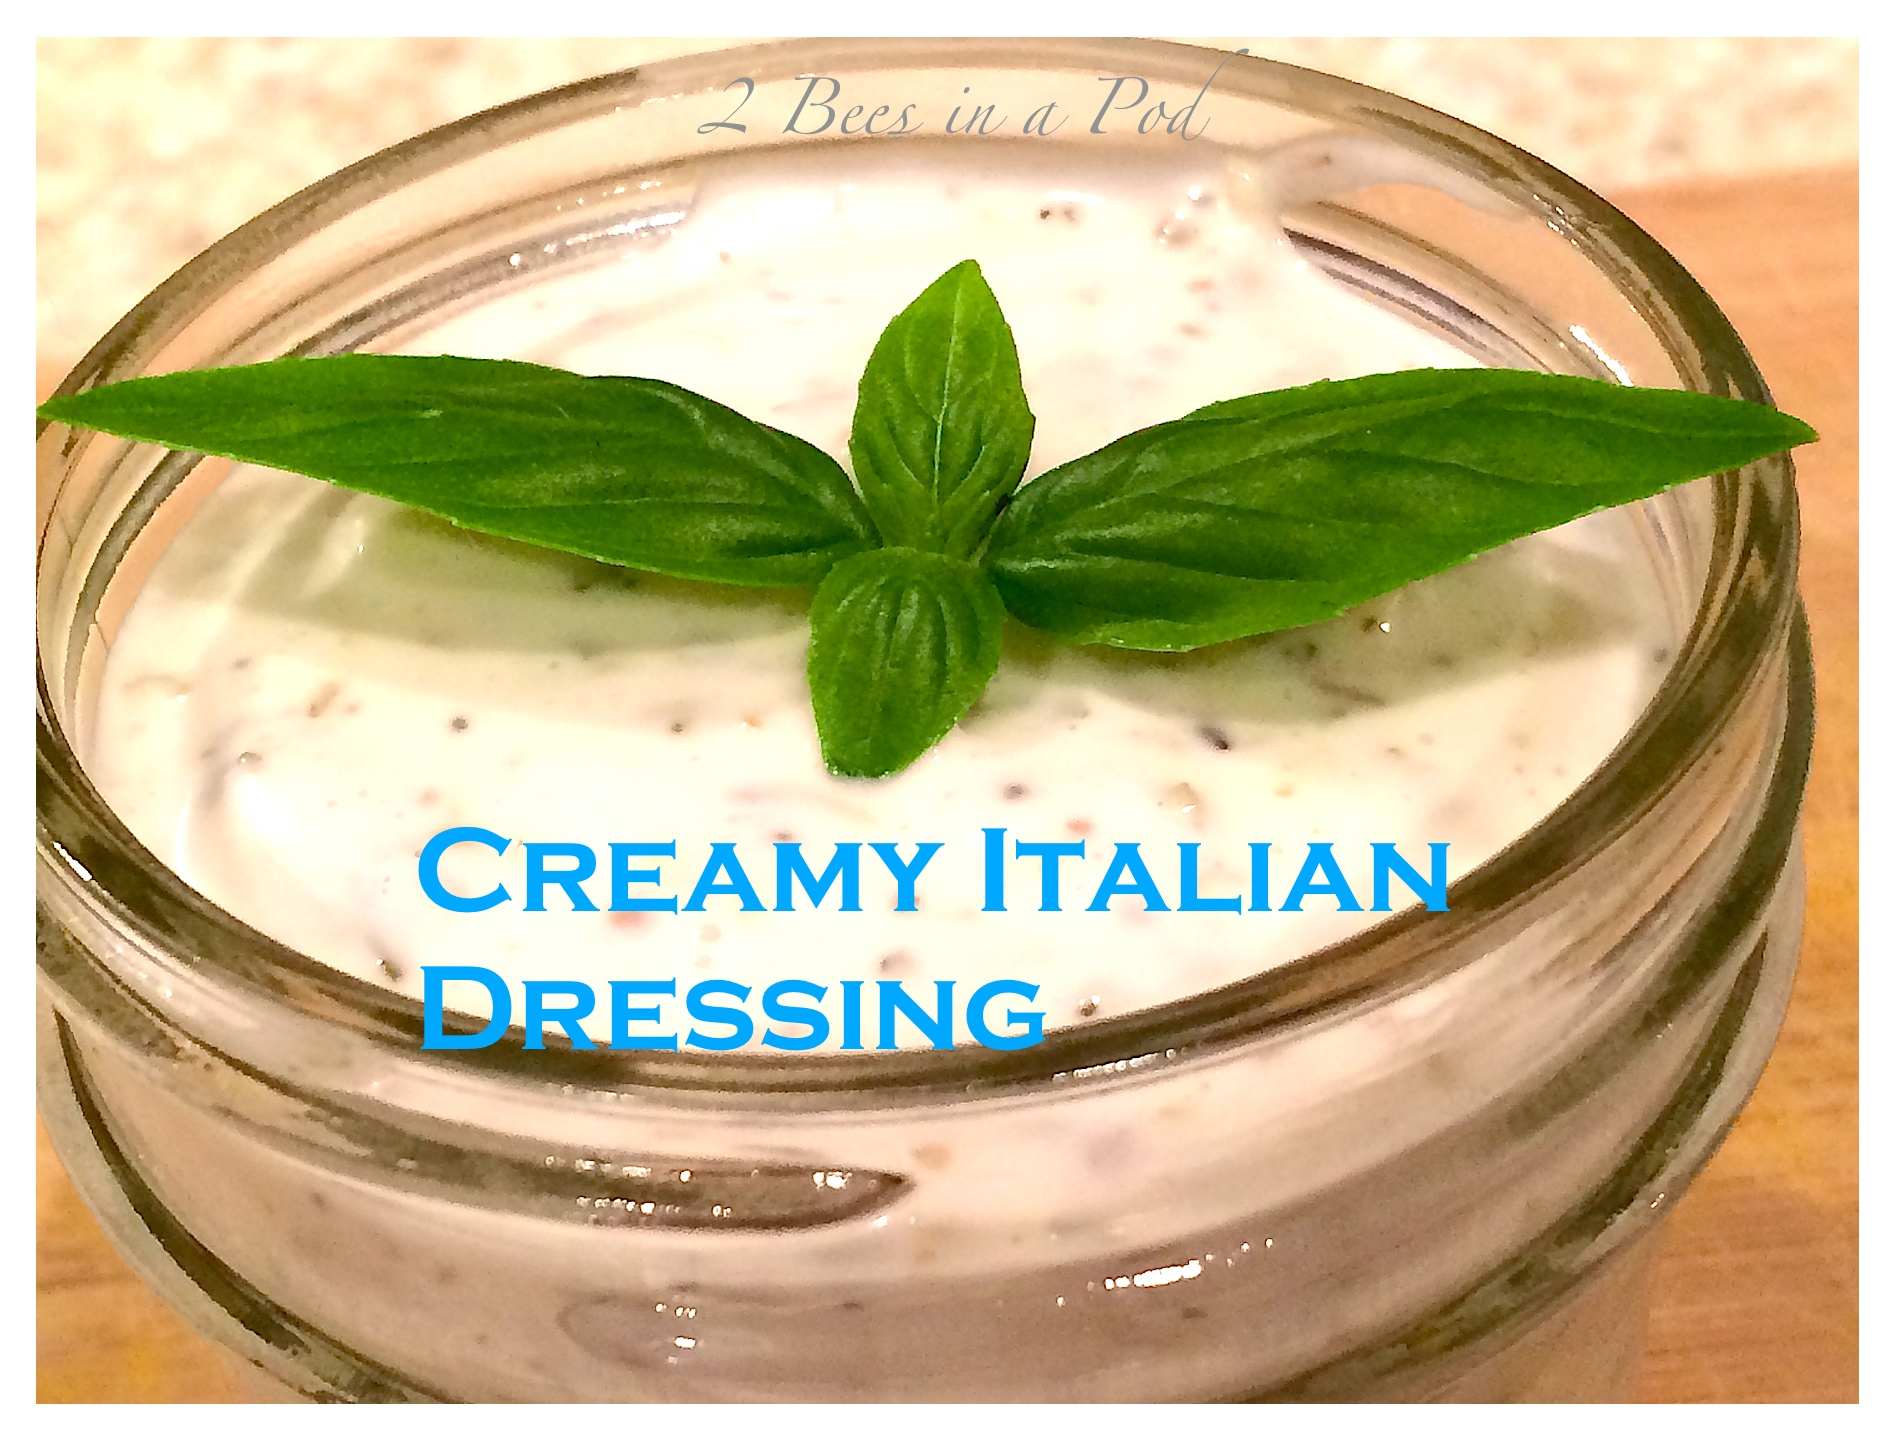 Recipe for creamy Italian dressing. Love the red wine vinegar and garlic flavor!